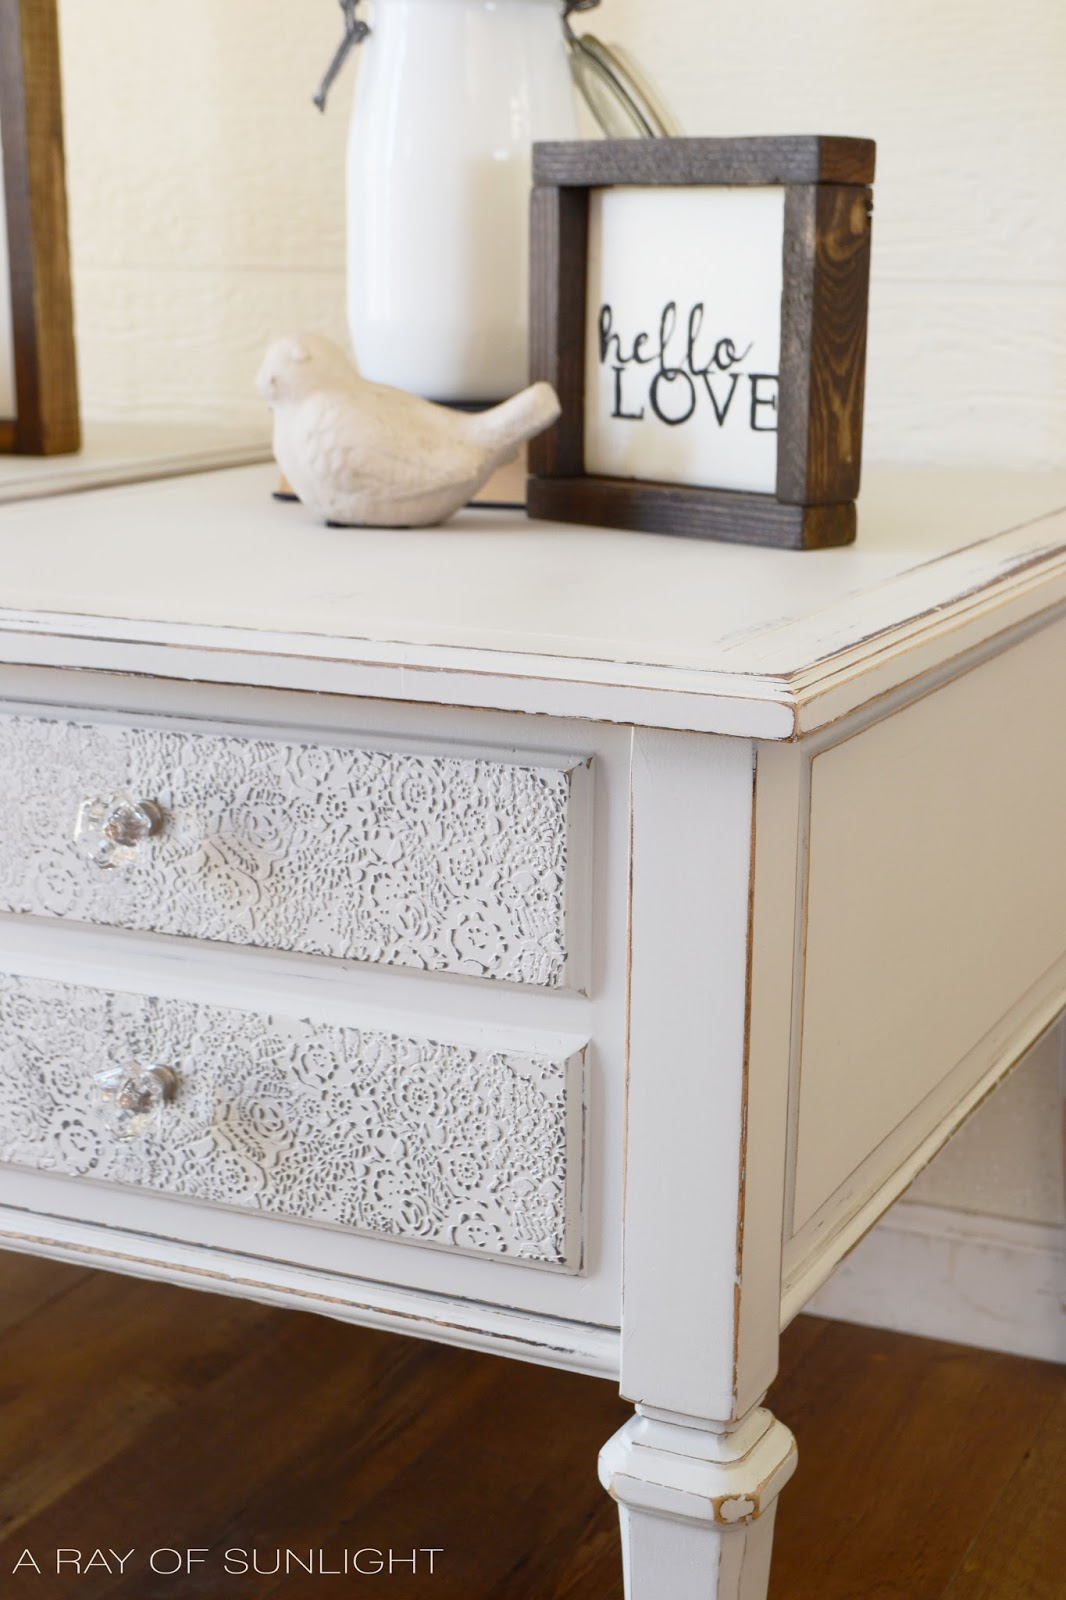 Get this look! The Light Gray End Tables with a Textured Stencil on the Drawer fronts and clear knobs. by A Ray of Sunlight This is the perfect neutral gray!